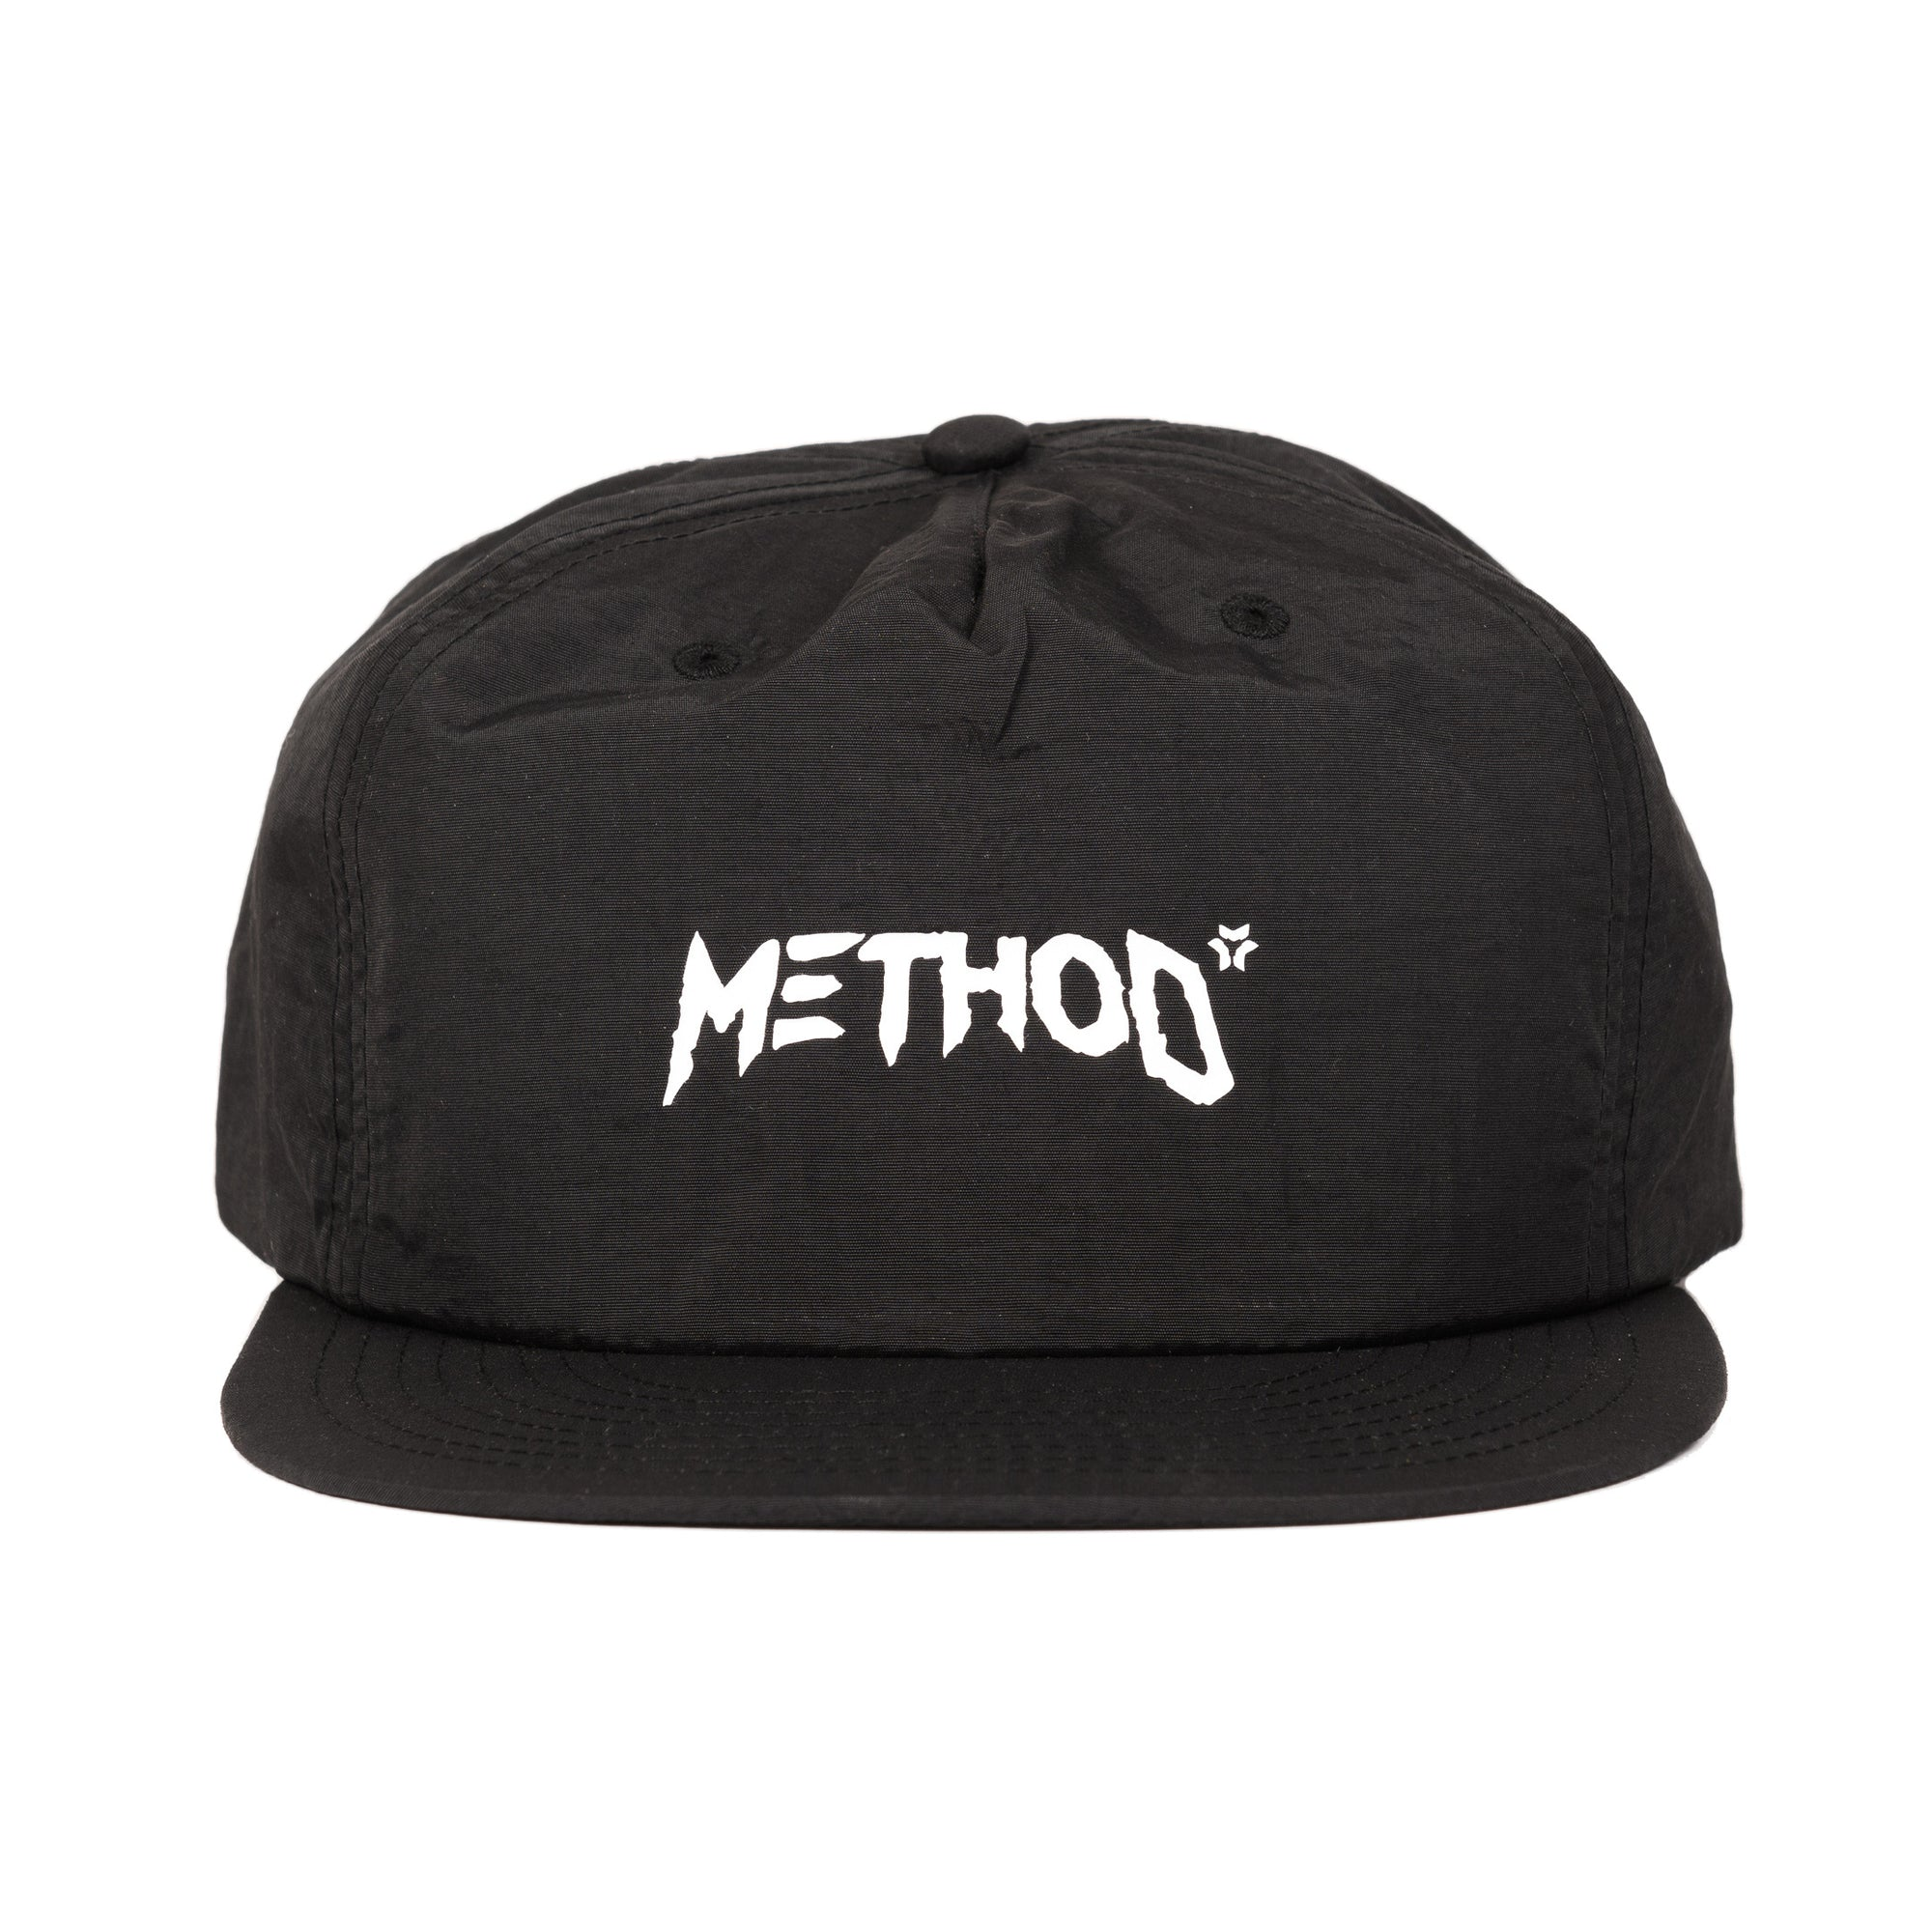 Method Printed Cap